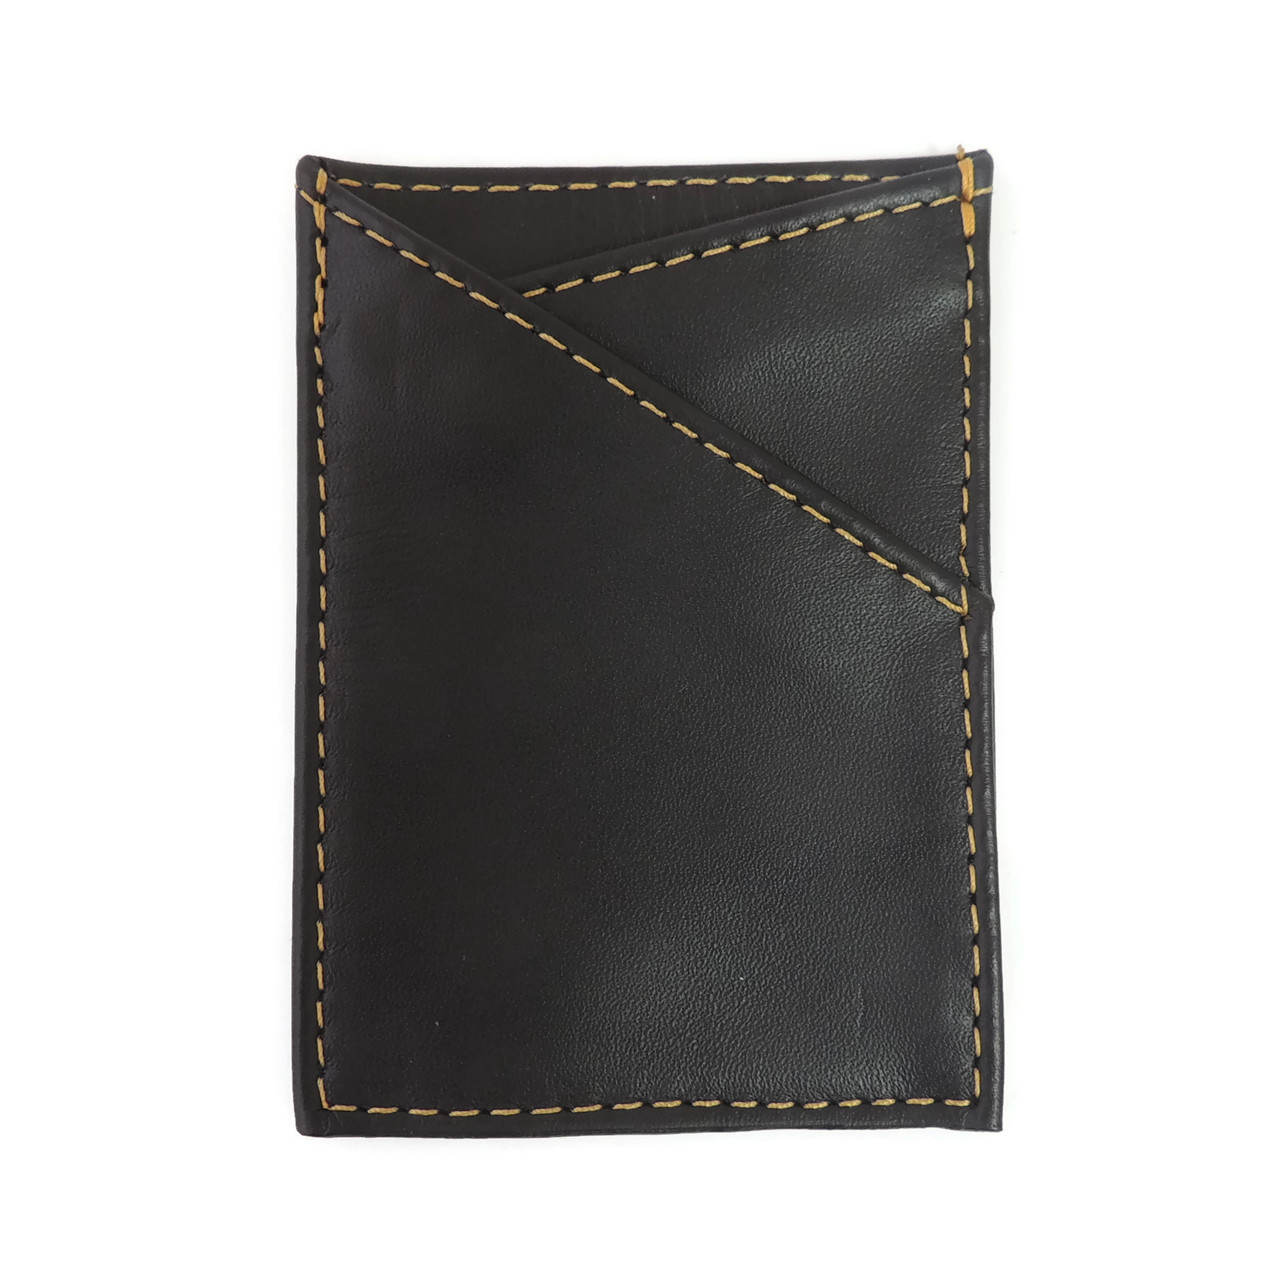 Card Case in Black Leather with Yellow Stitching